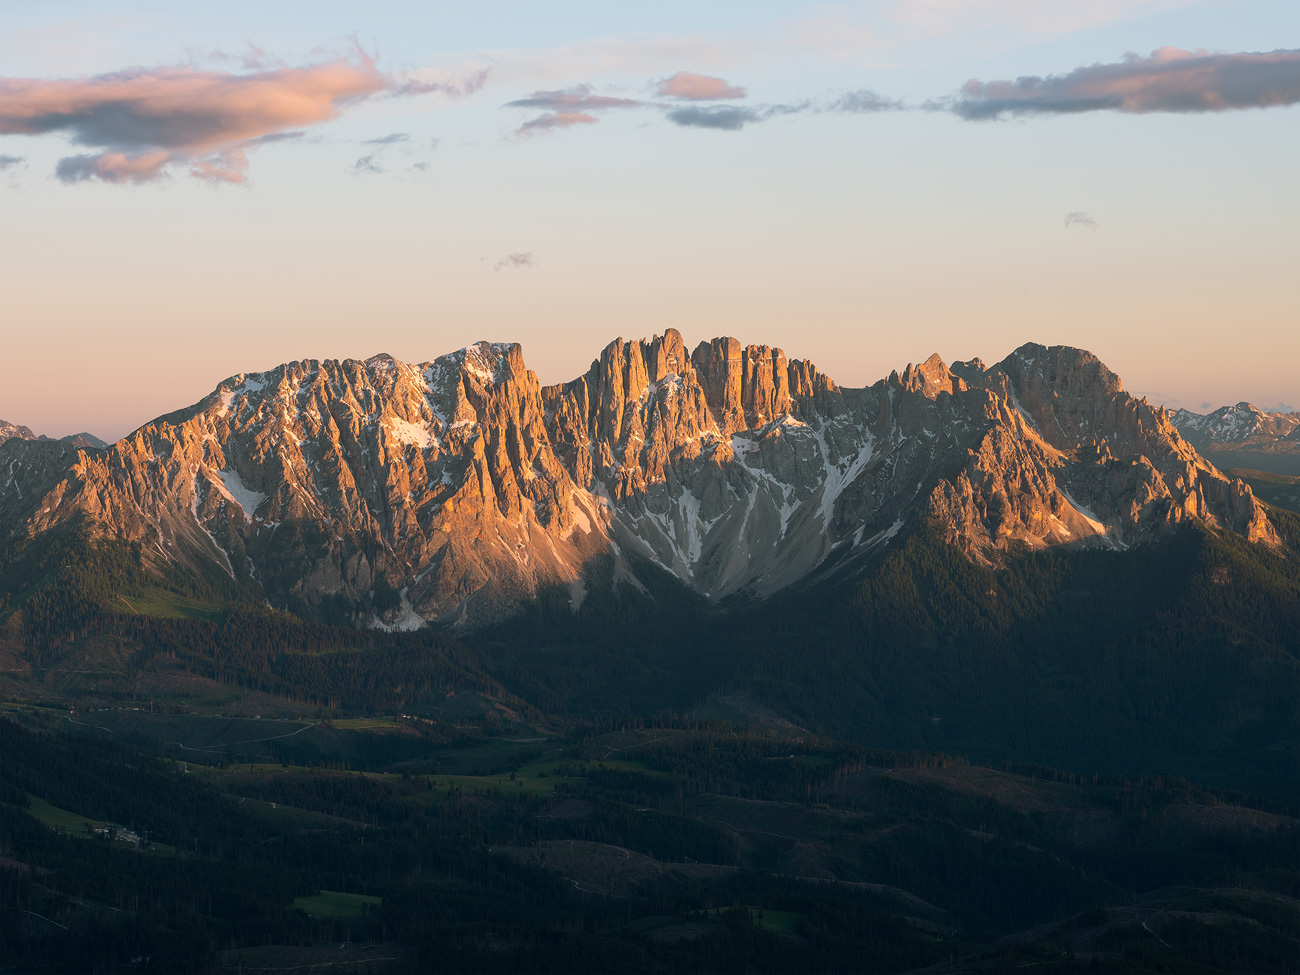 Latemar, Dolomites, South Tyrol, Italy by Nils Leonhardt.jpg